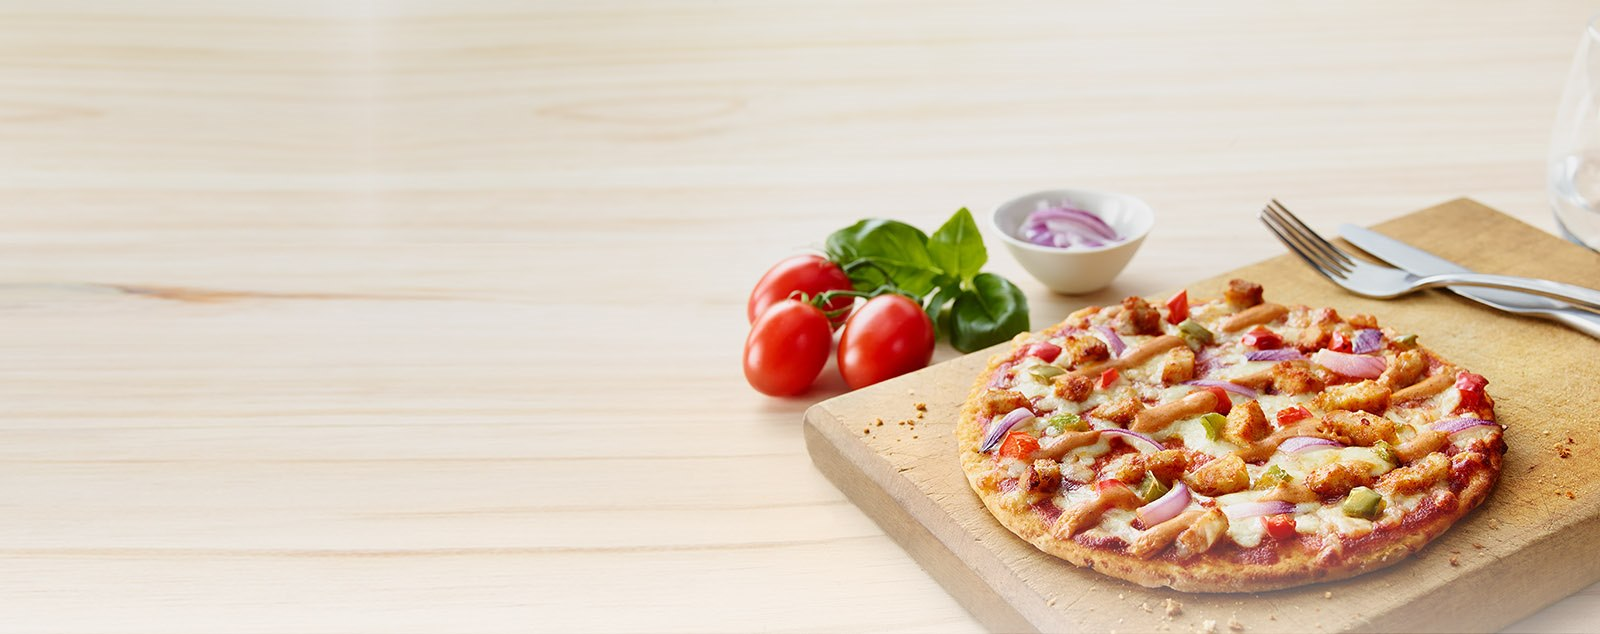 McCain Ultra-Thin Crust Pizzas